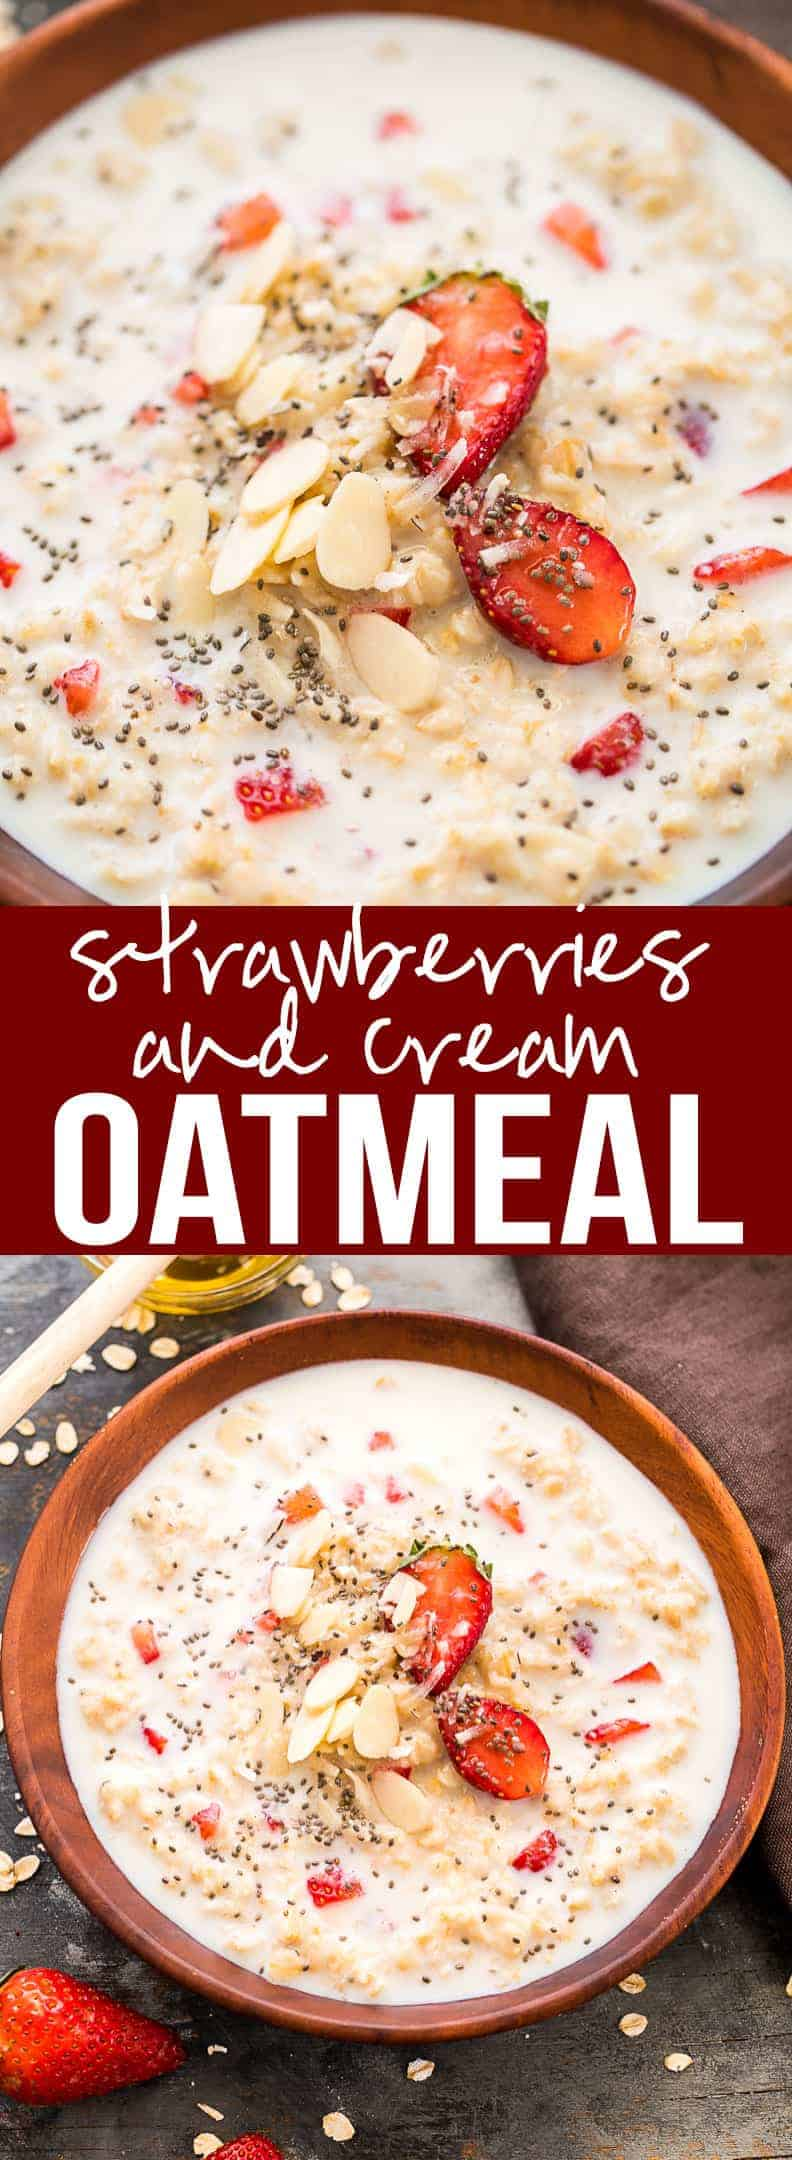 Healthy Strawberries and Cream Breakfast Oatmeal makes for a delicious breakfast that is really wholesome and keeps your energy levels up! The best part about making this is that you can add as many toppings that you want. This recipe suggests chia seeds and honey drizzled on top but you can get as creative as you want! It also doubles up as dessert! #myfoodstory  #recipe #oatmeal #healthy #breakfast #easy #howtomake